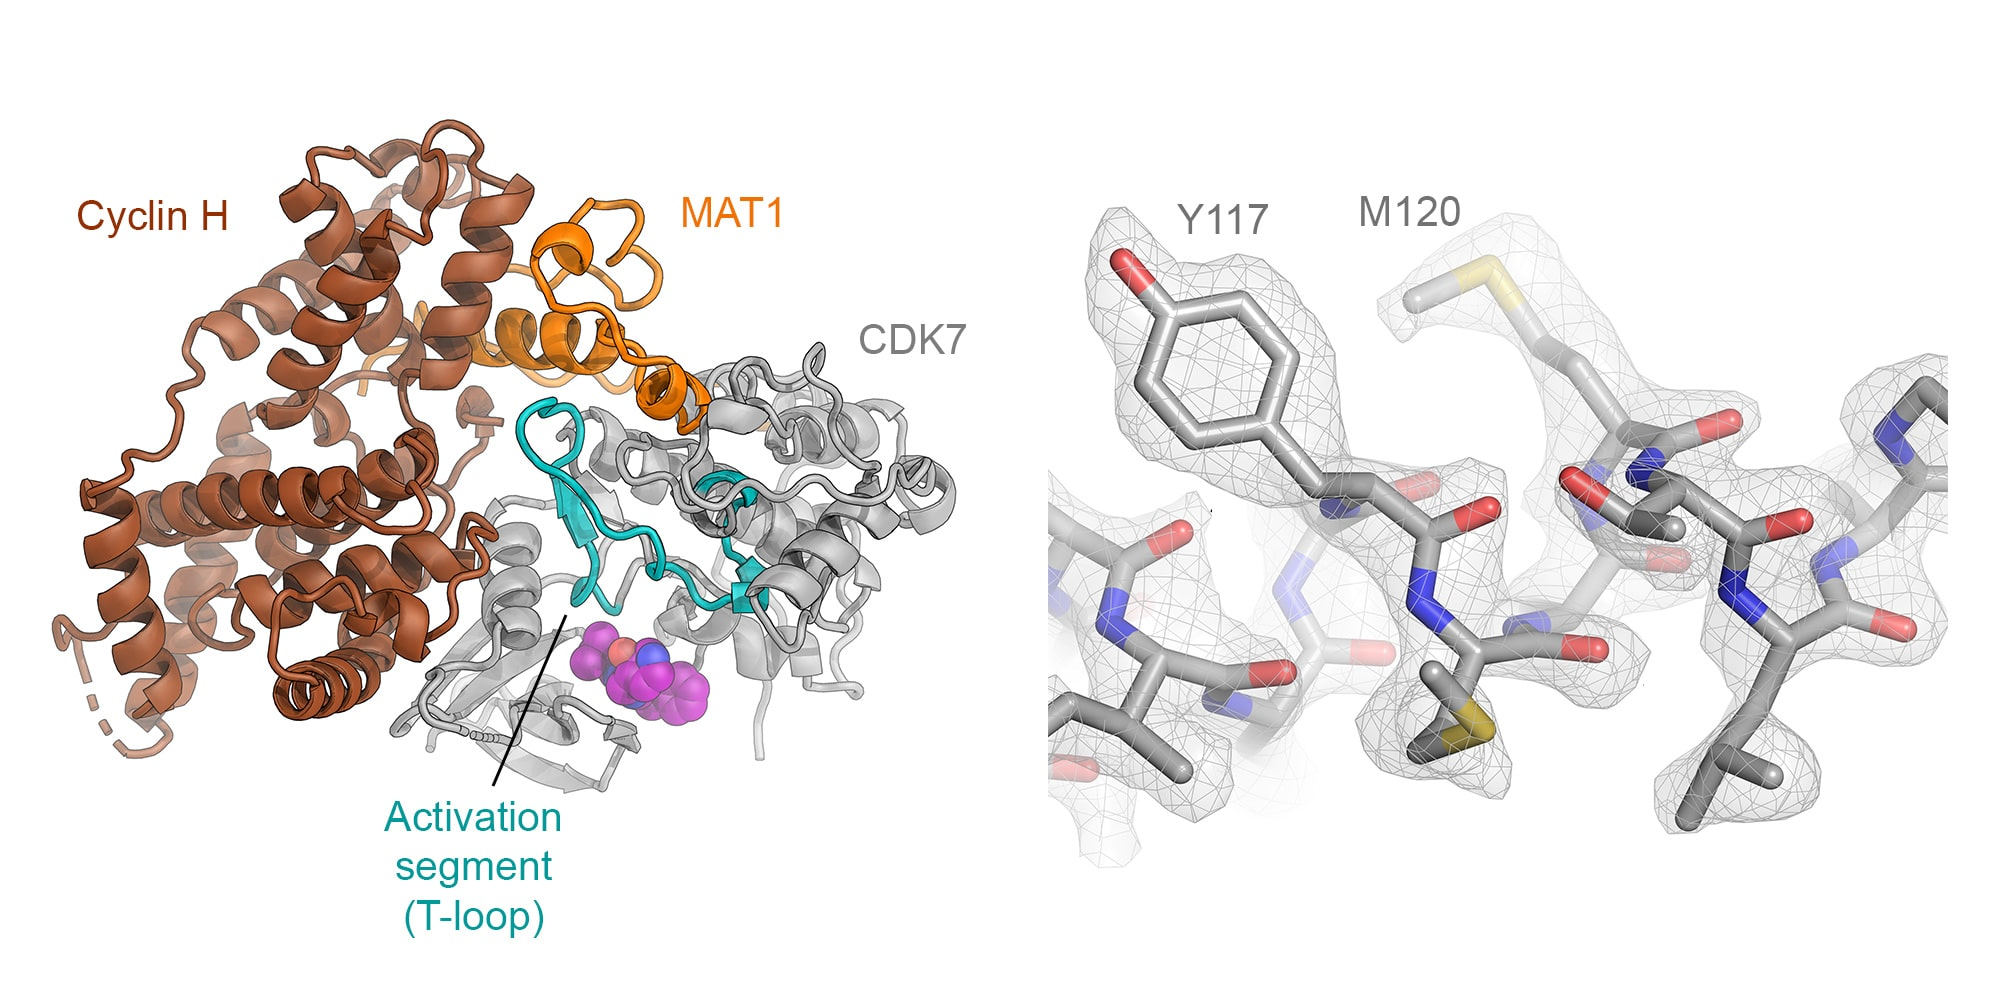 Cryo-EM reveals ligand binding in the SARS-CoV-2 spike protein and the human CDK-activating kinase